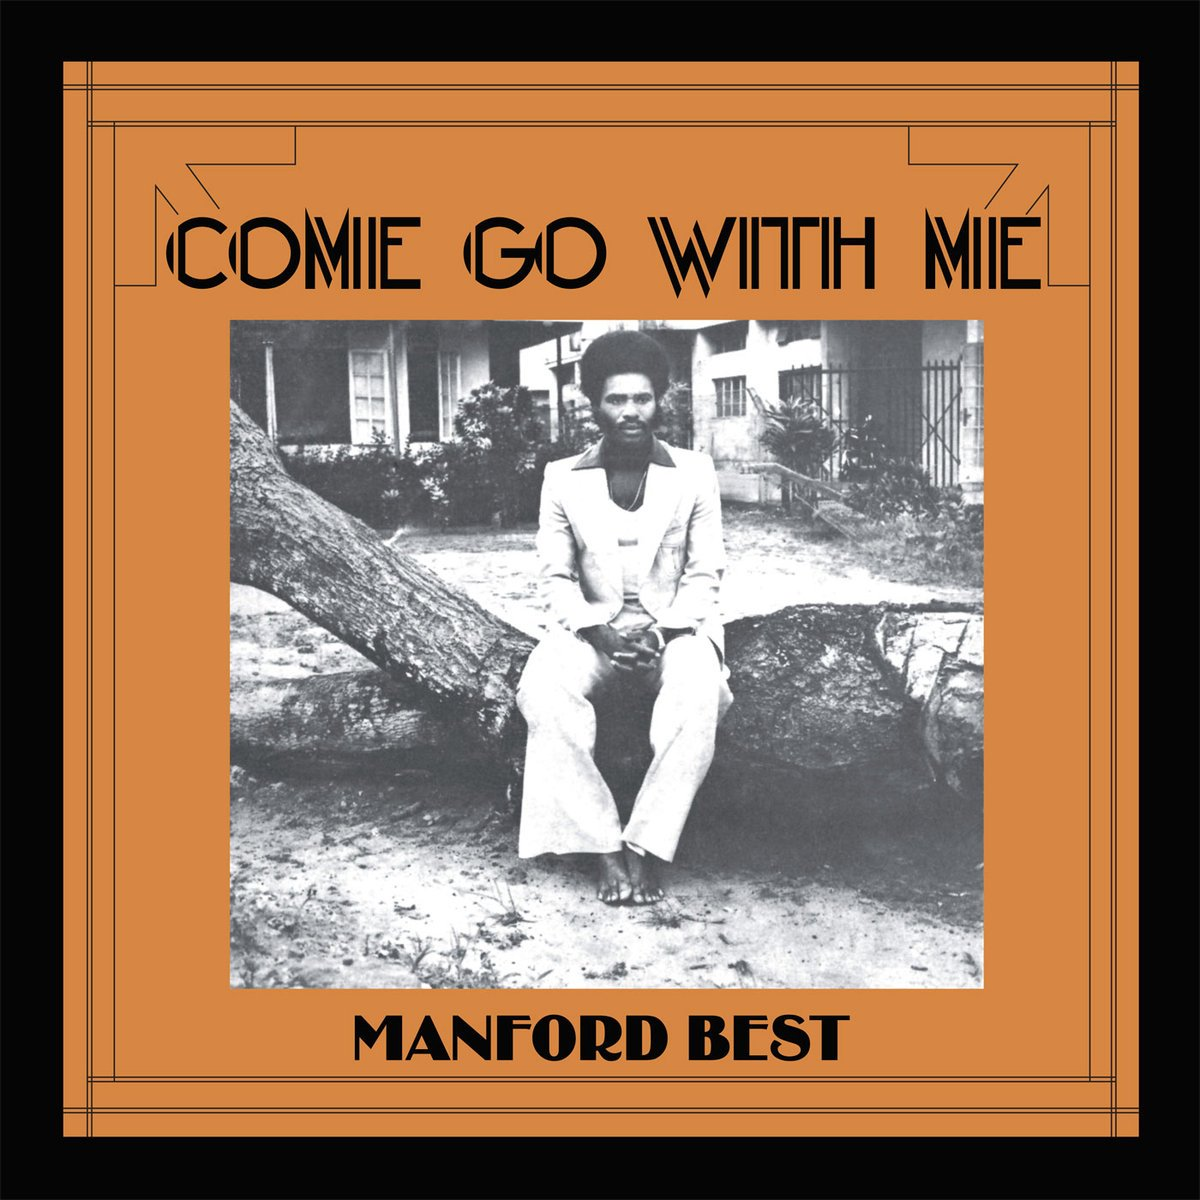 manford best - come go with me LP